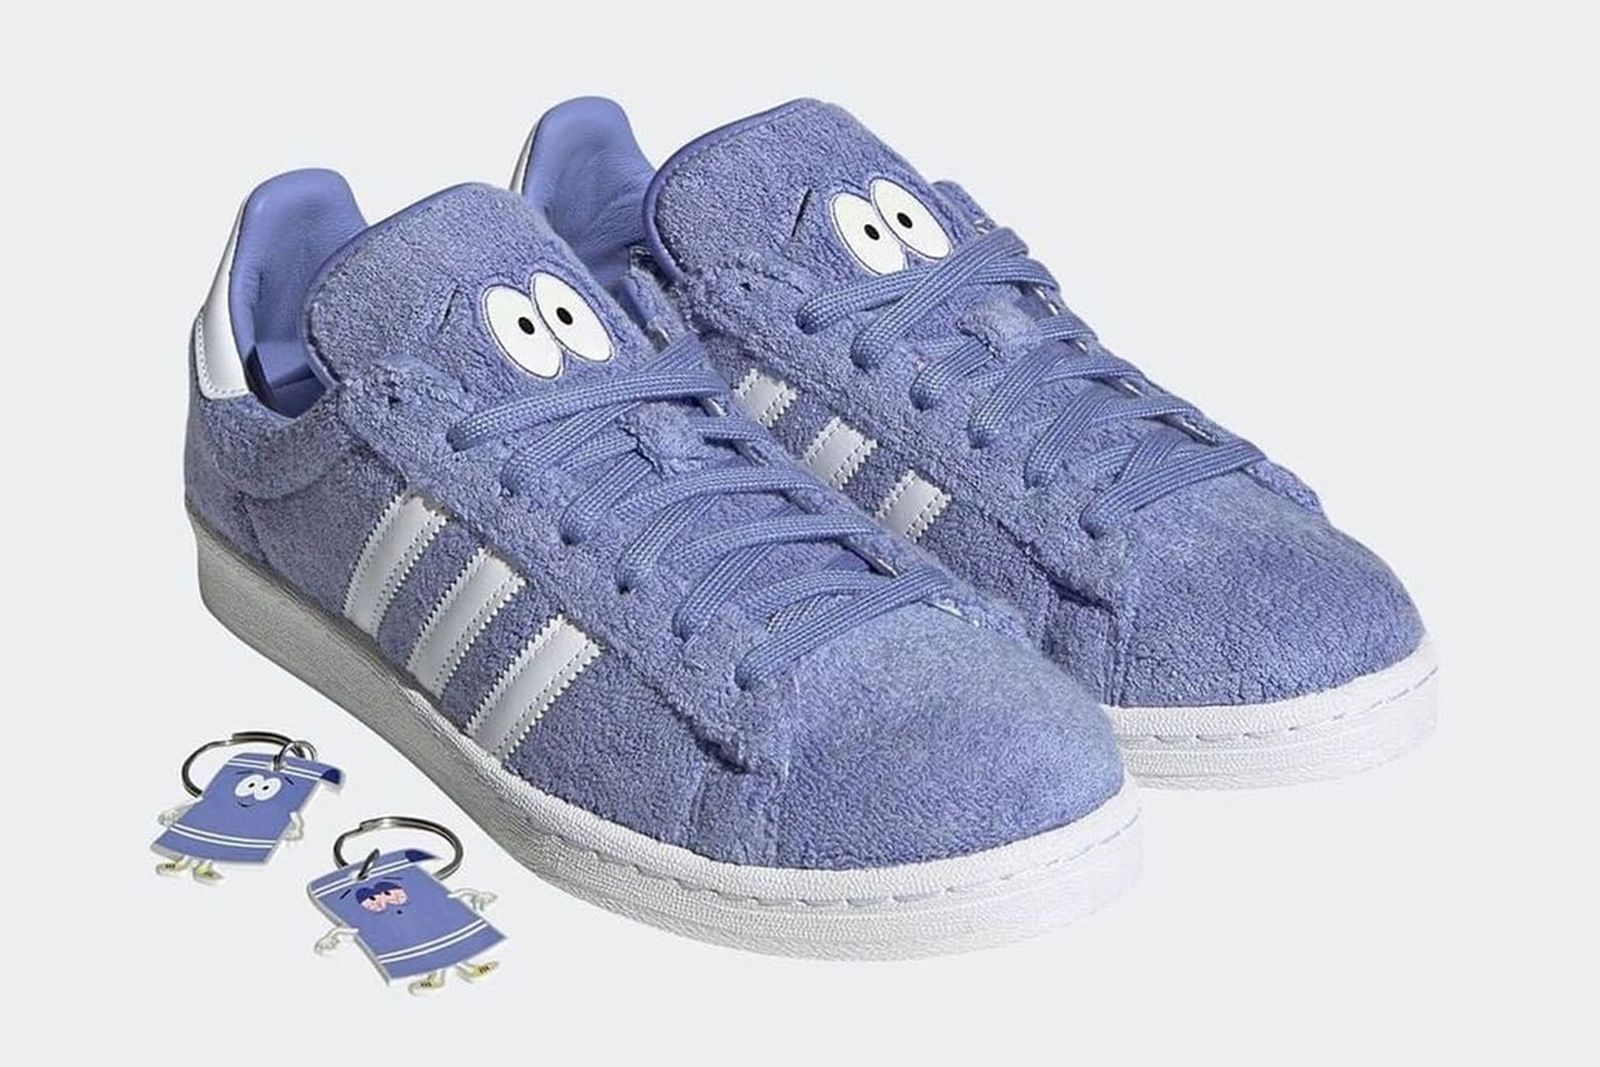 south-park-adidas-campus-80-towelie-release-date-price-01